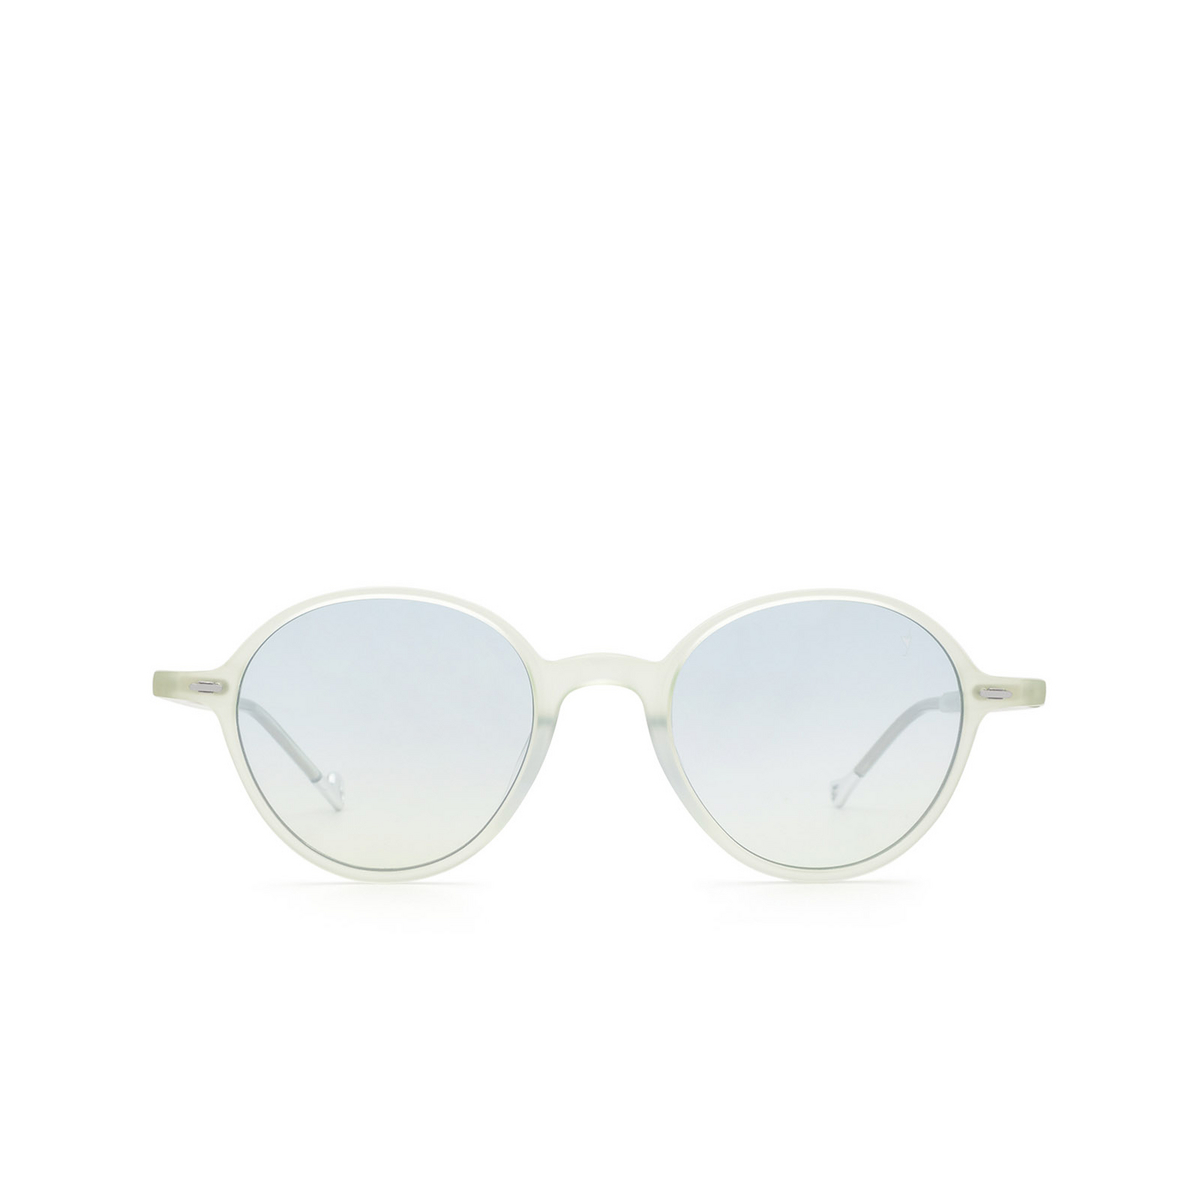 Eyepetizer® Round Sunglasses: Sforza color Green Aquamarine C.A/A-23F - front view.